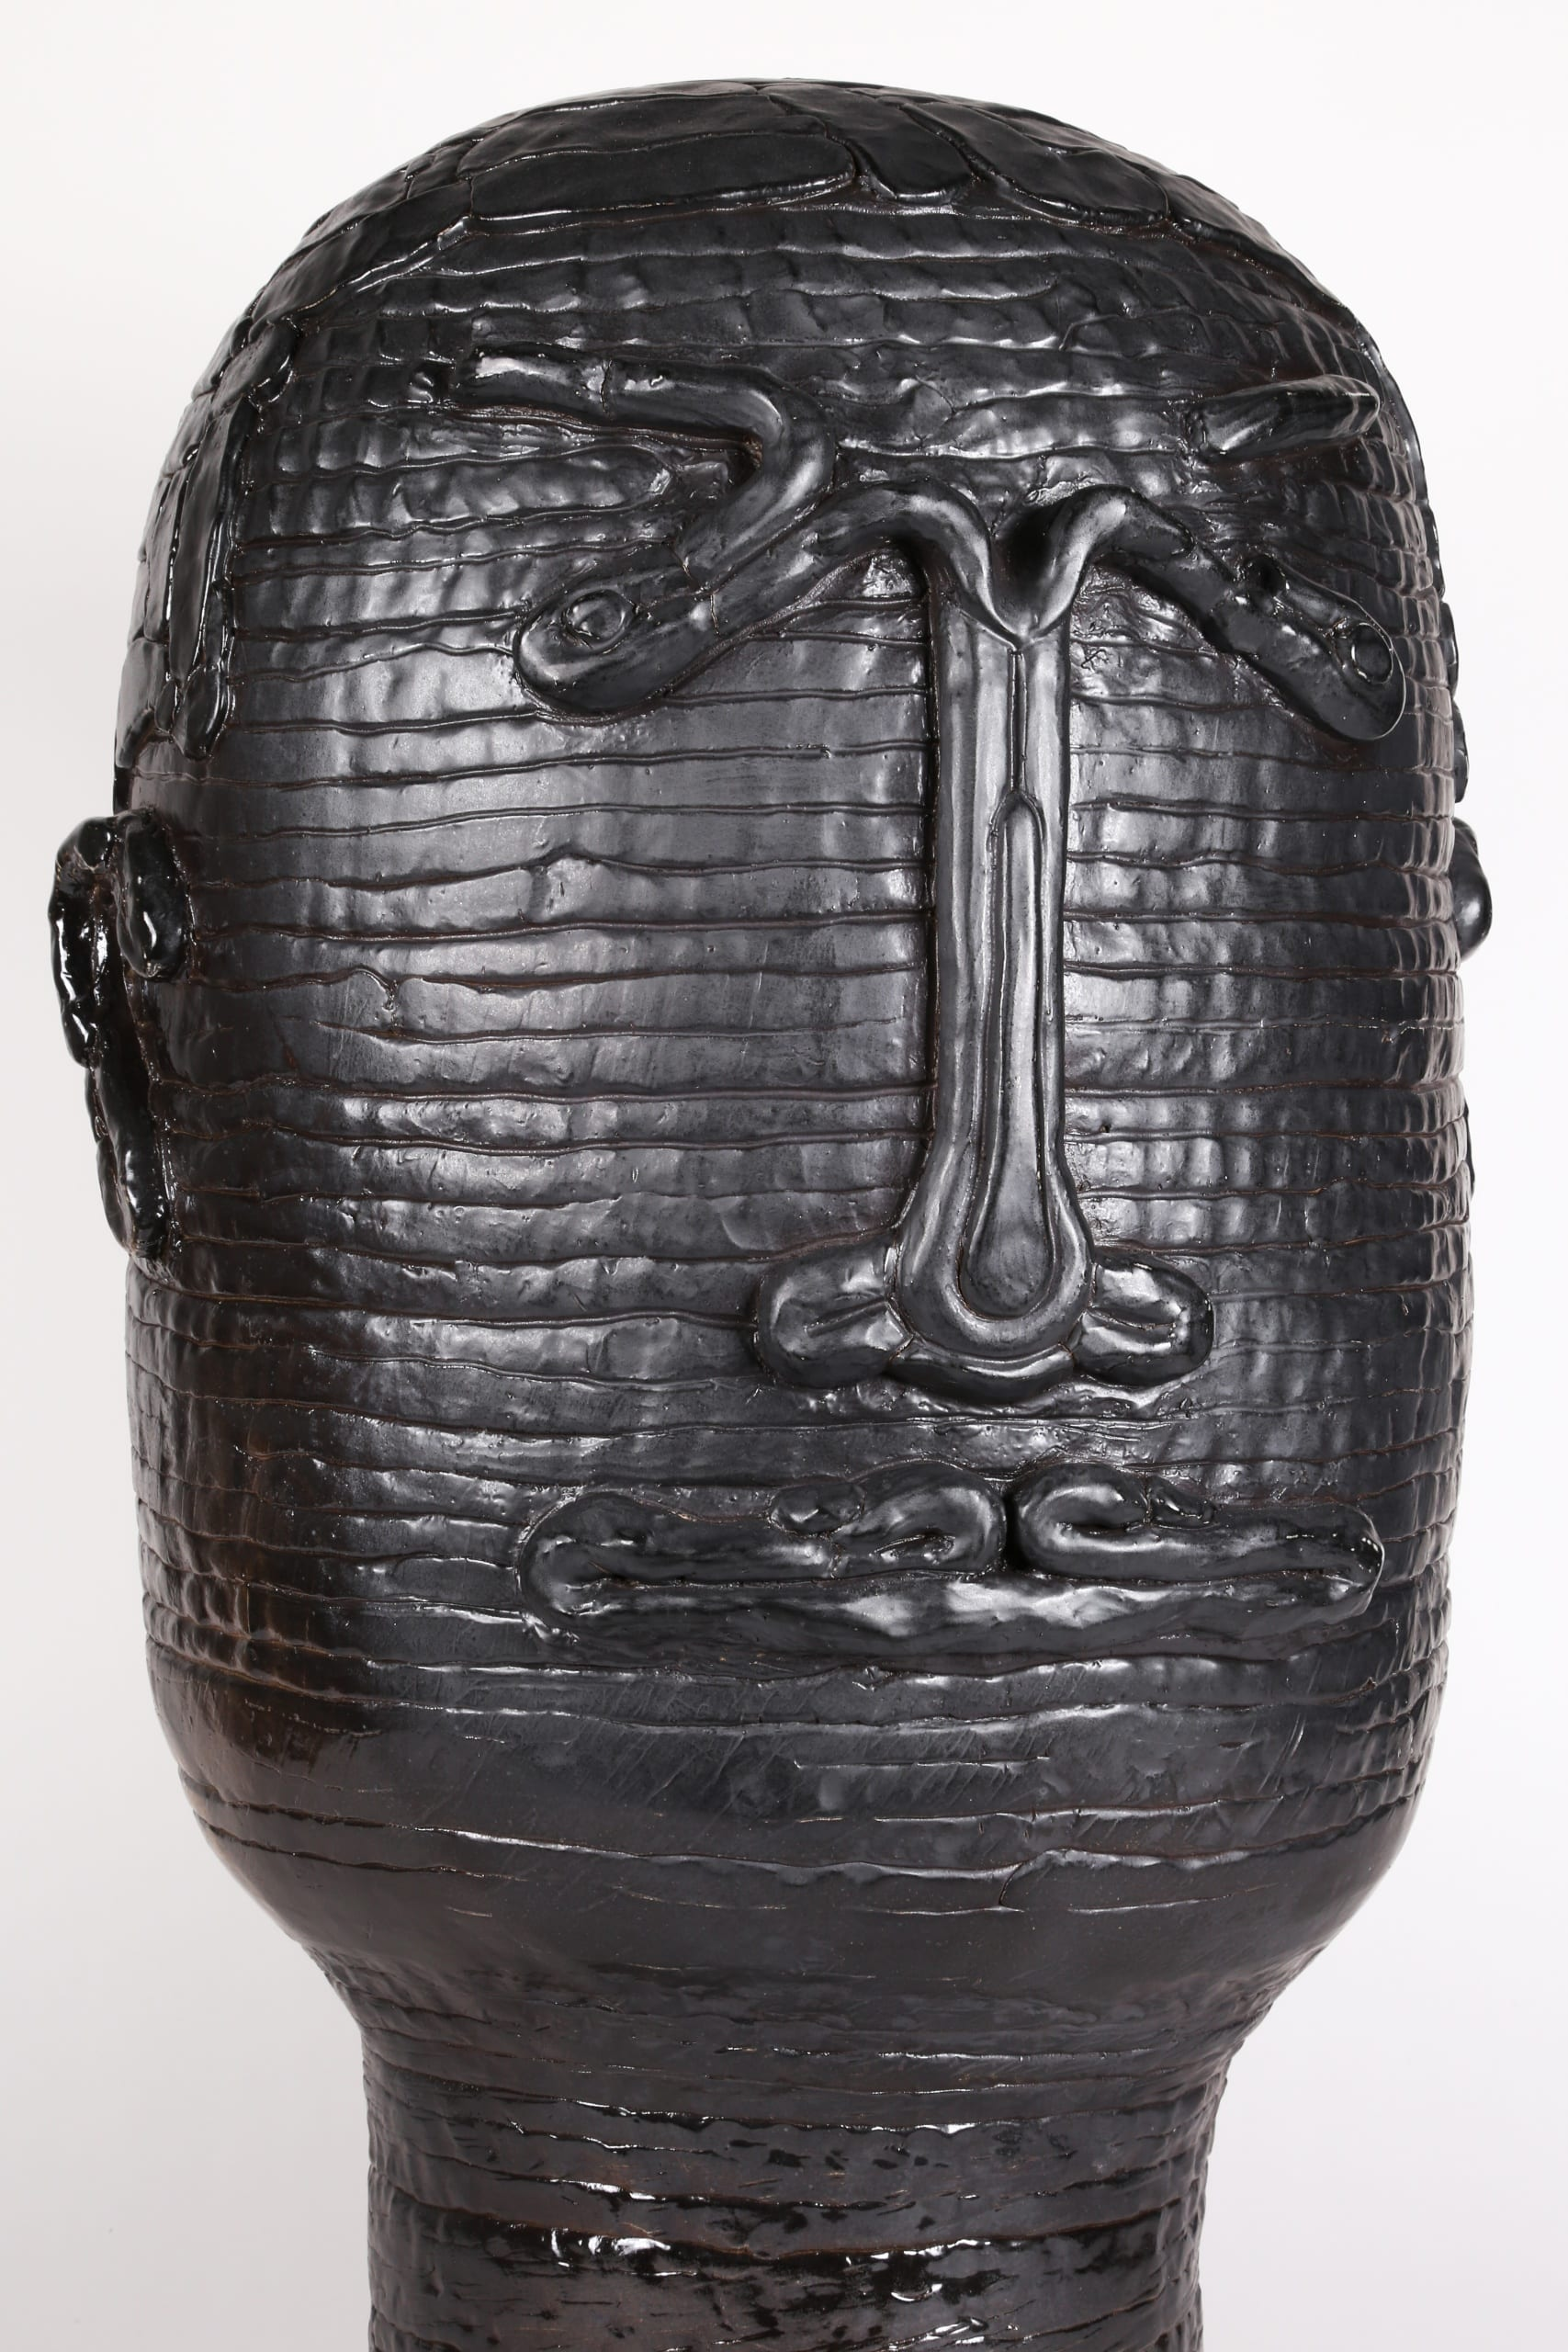 Color photograph of an abstract ceramic portrait head that appears to be made from a long coil of clay, showing an up-close view of the object's front so the clay's texture is more visible. The outline of two eyes, a nose, a mouth, and two ears are affixed to its surface. The object is a monochromatic black with a slight sheen to the glaze.